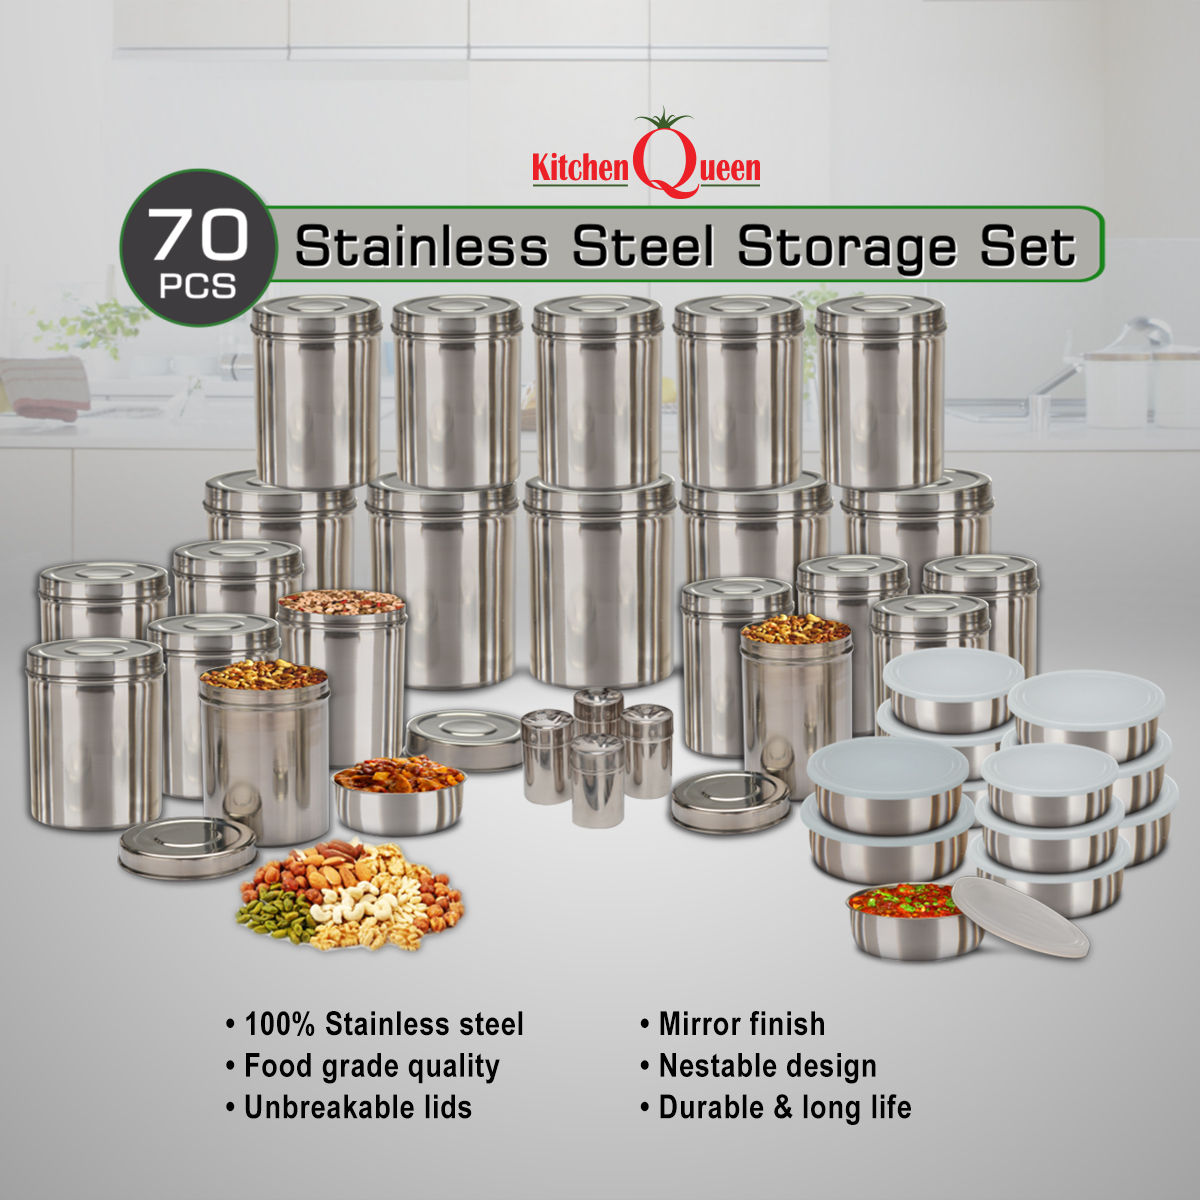 Buy Kitchen Queen 70 Pcs Stainless Steel Storage Set